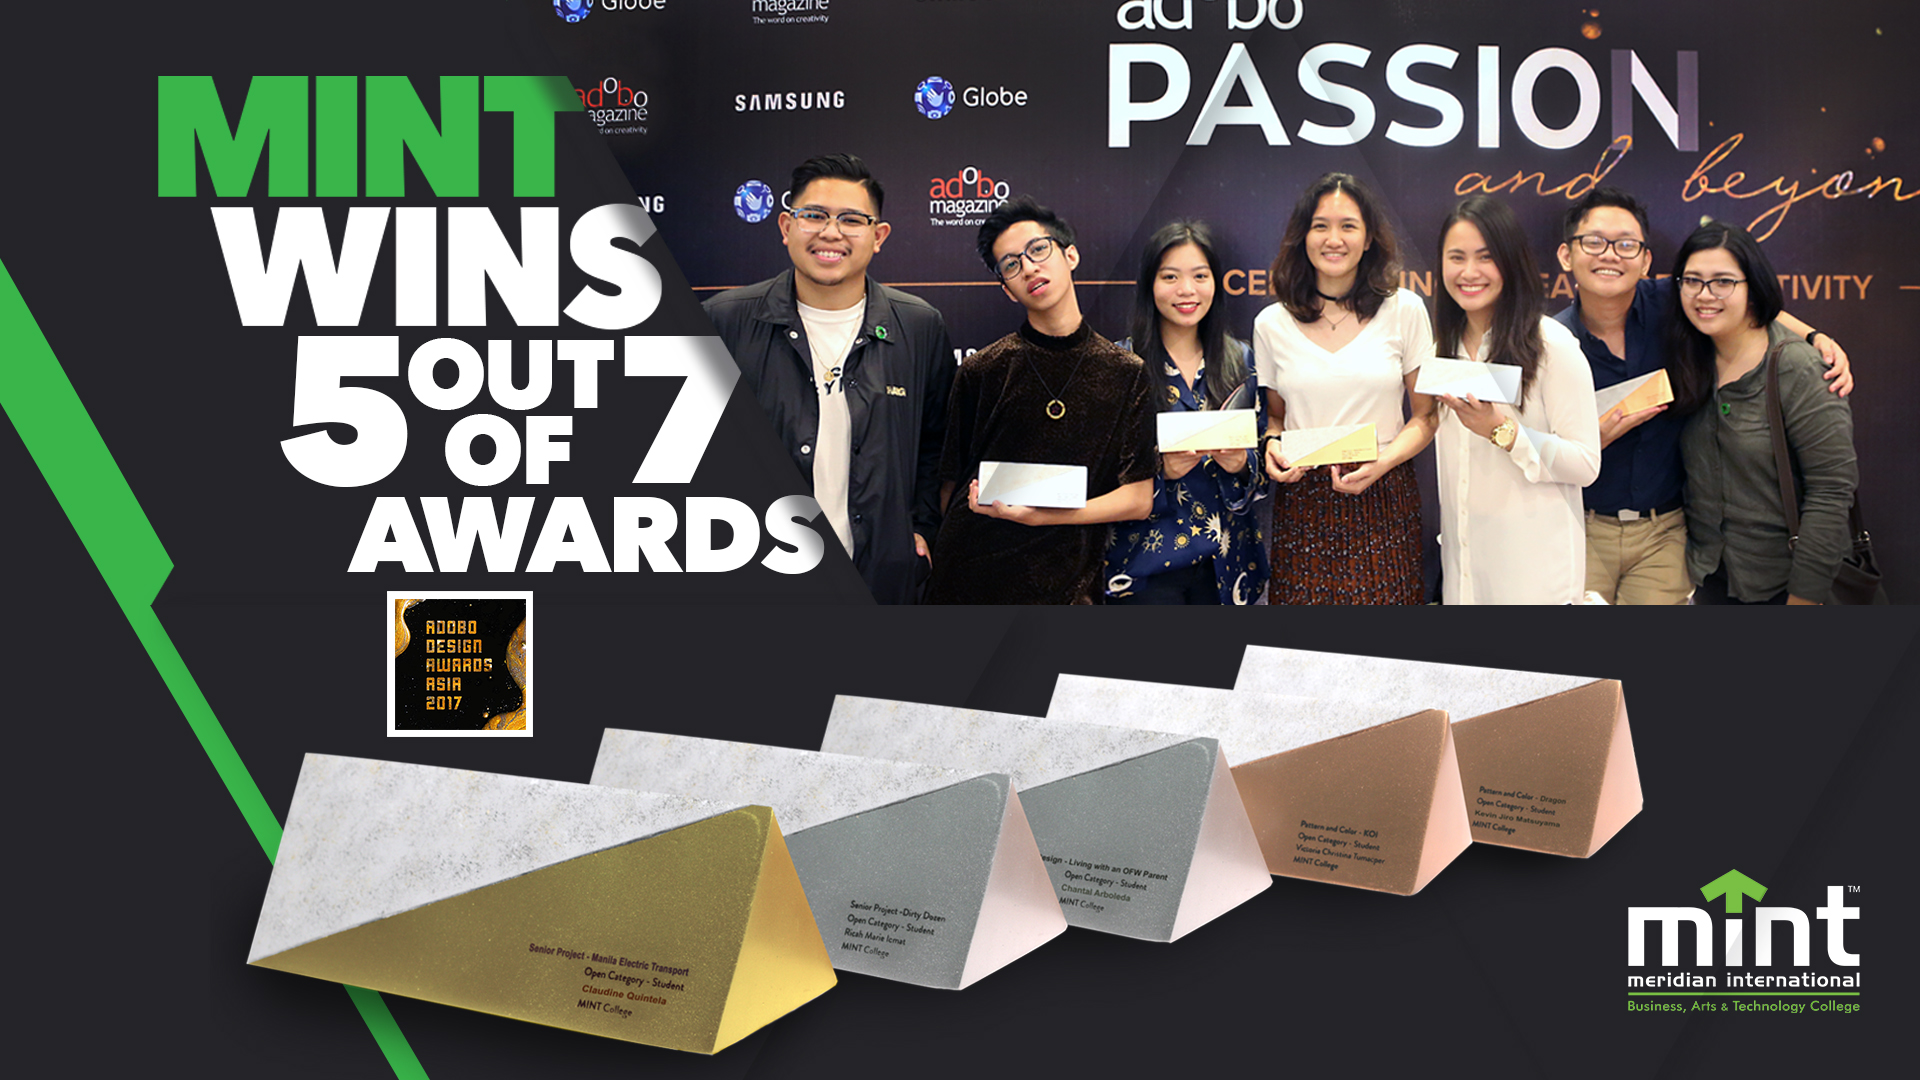 MINT College Multimedia Arts students win 5 out of 7 awards at the annual adobo Design Awards Asia 2017 event in April 2017. This was MINT's first time to compete in this prestigious contest, garnering a total of 5 awards, with 9 nominations - the most out of any school.